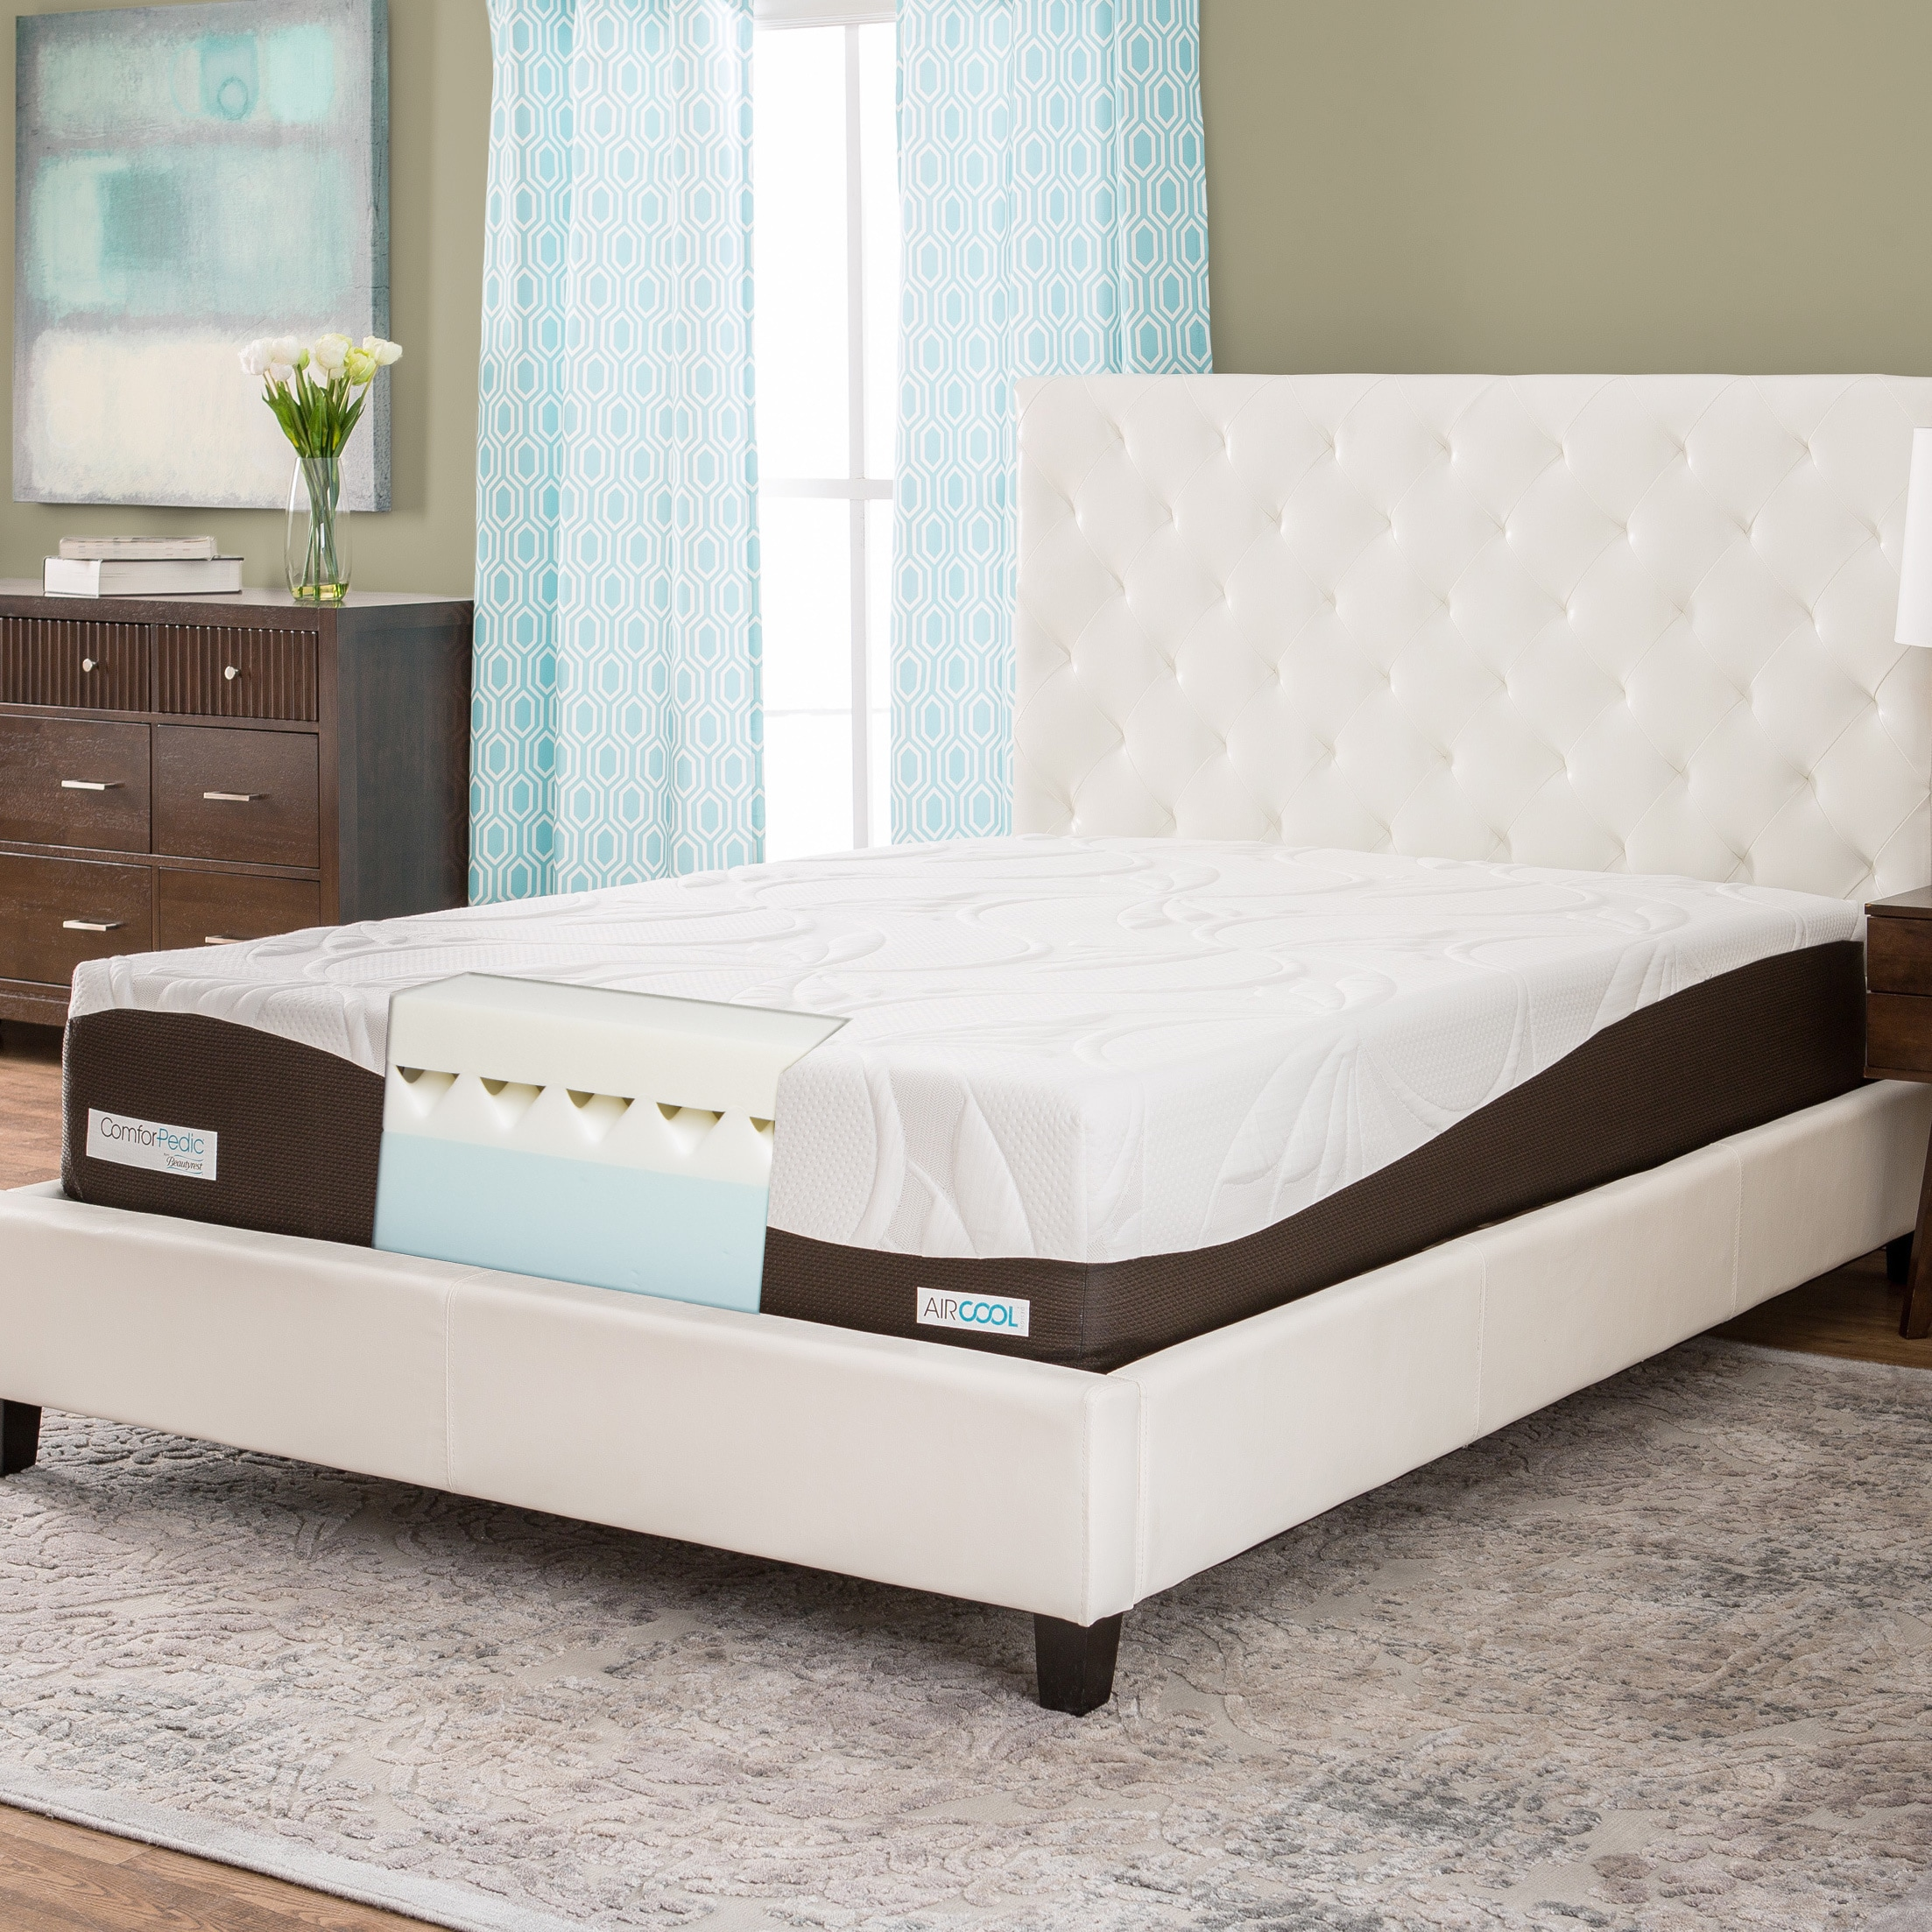 Simmons Beautyrest ComforPedic from Beautyrest 12-inch King-size Memory Foam Mattress by Overstock